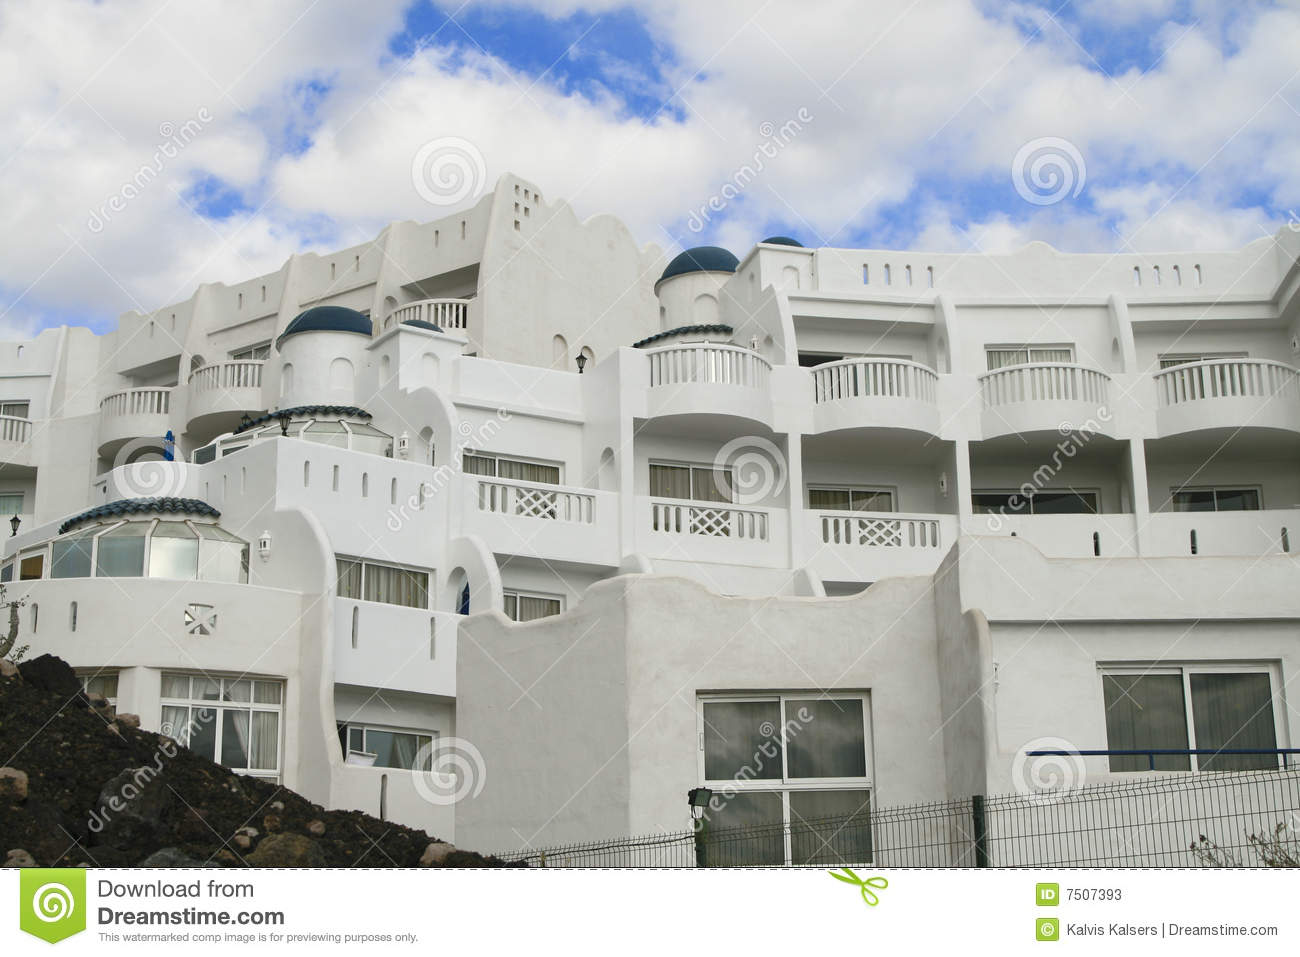 Hotel in canary tenerife stock photos image 7507393 for Hotel design canaries